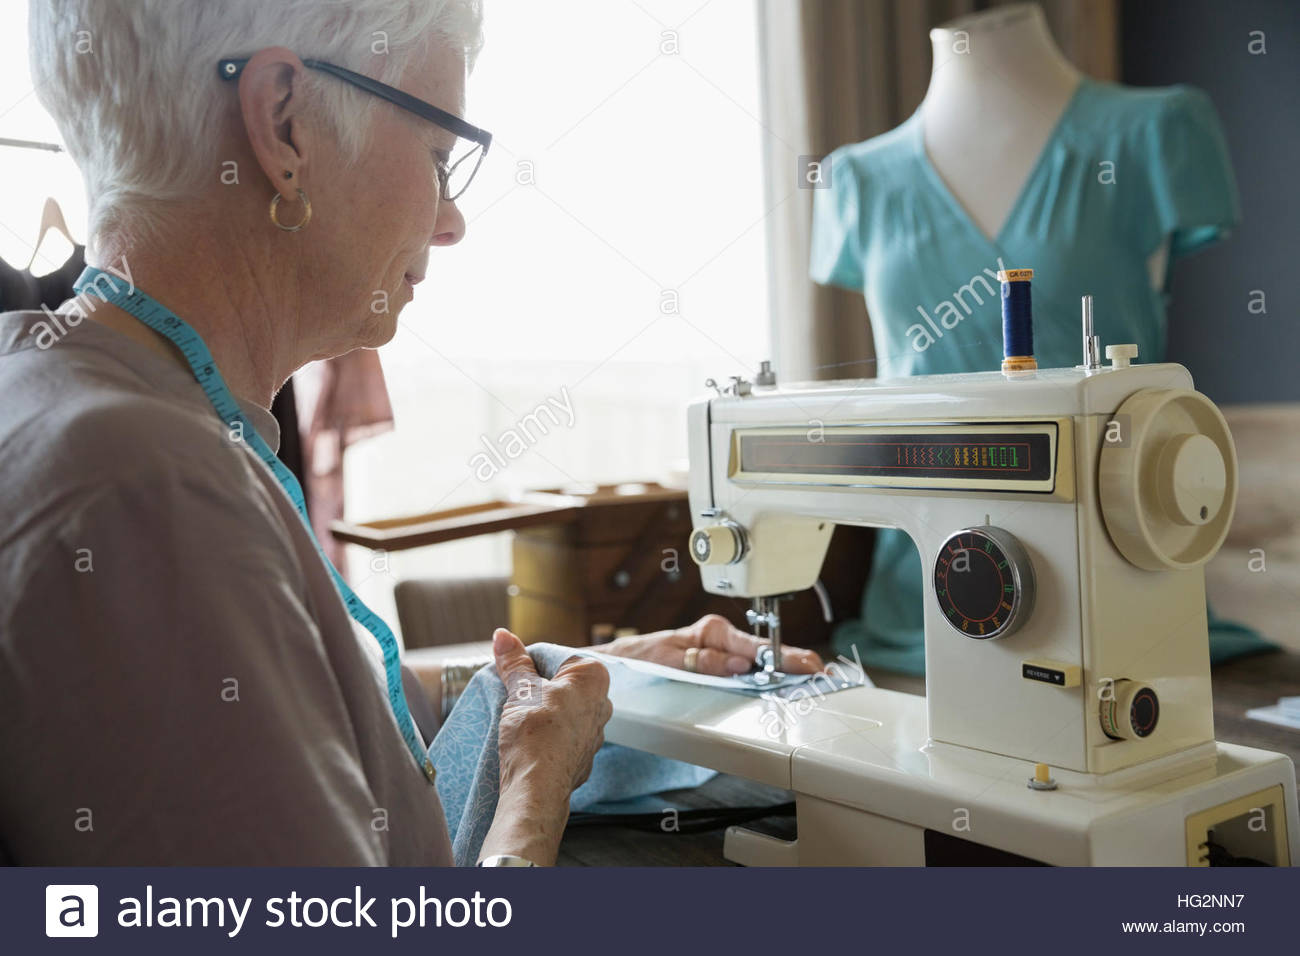 Senior woman seamstress using sewing machine in home office - Stock Image